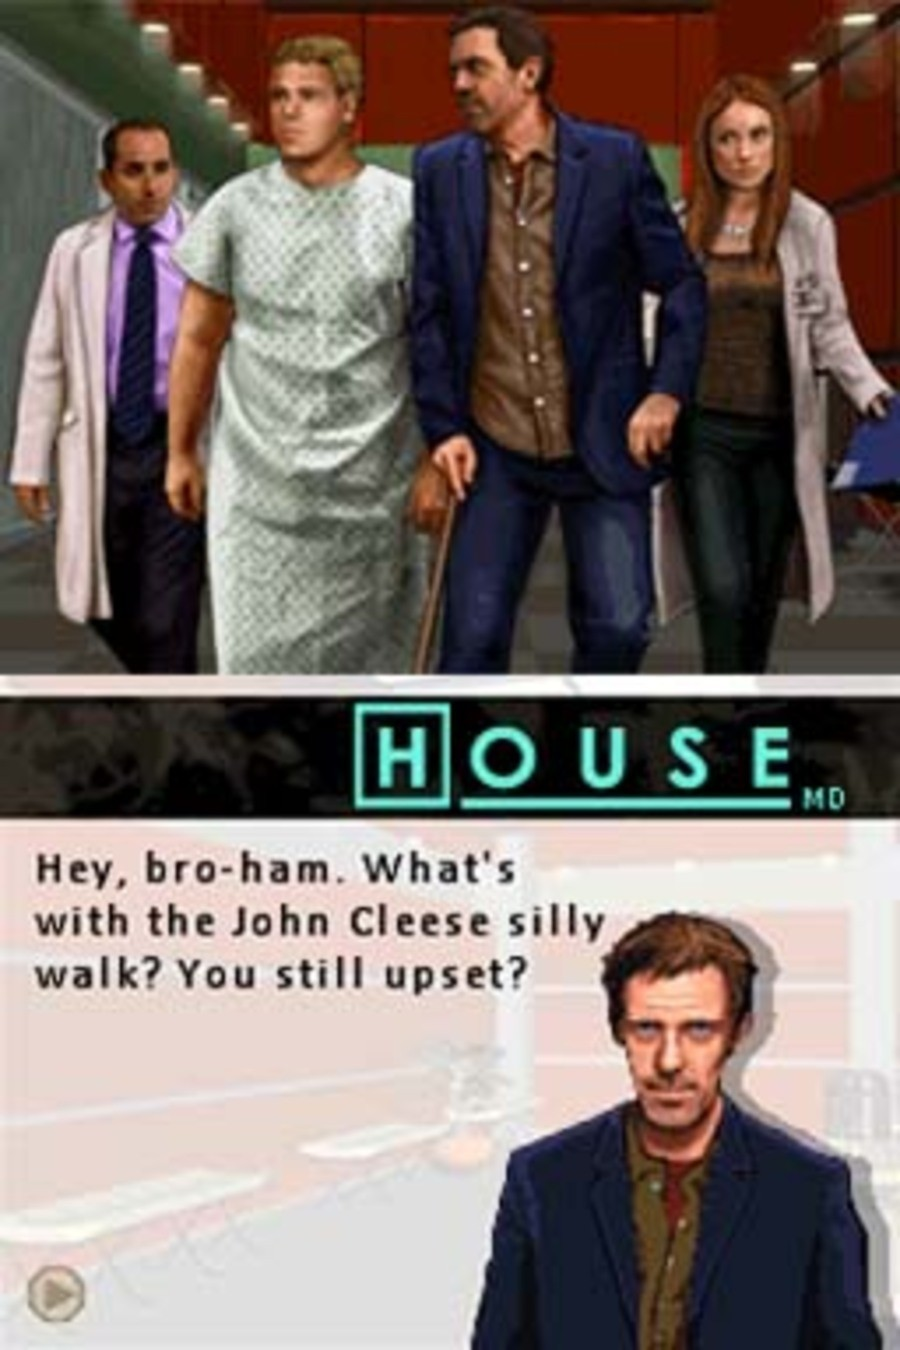 House, M.D. - Episode 3: Skull and Bones Screenshot